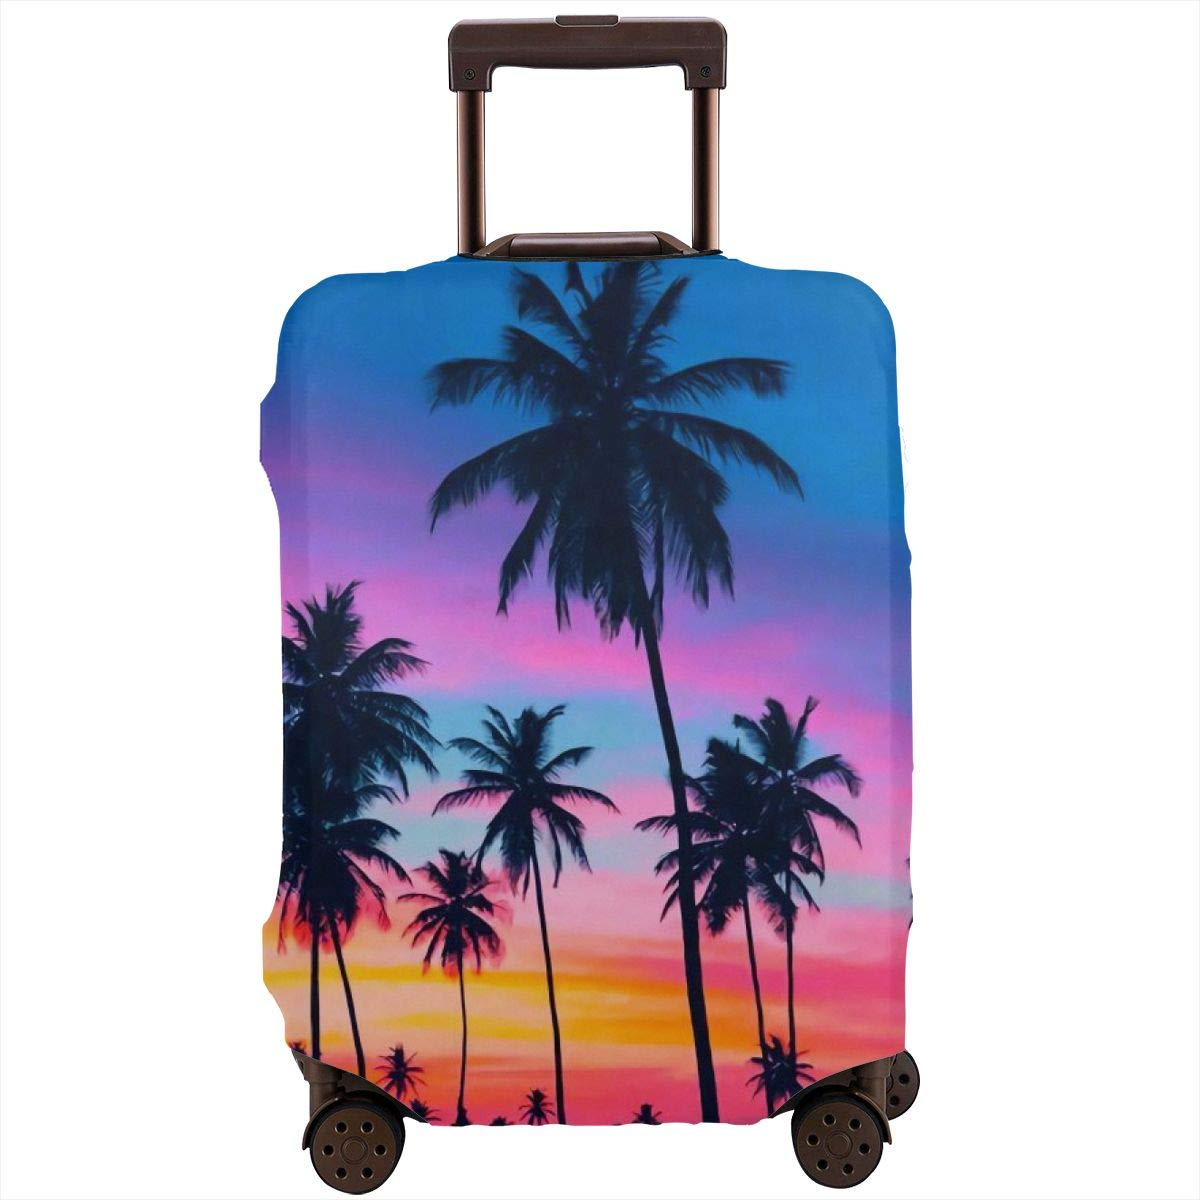 Washable Spandex Travel Luggage Protector Print Baggage Suitcase Cover Palm Trees By The Sea Dusk Fits 18 To 32 Inch